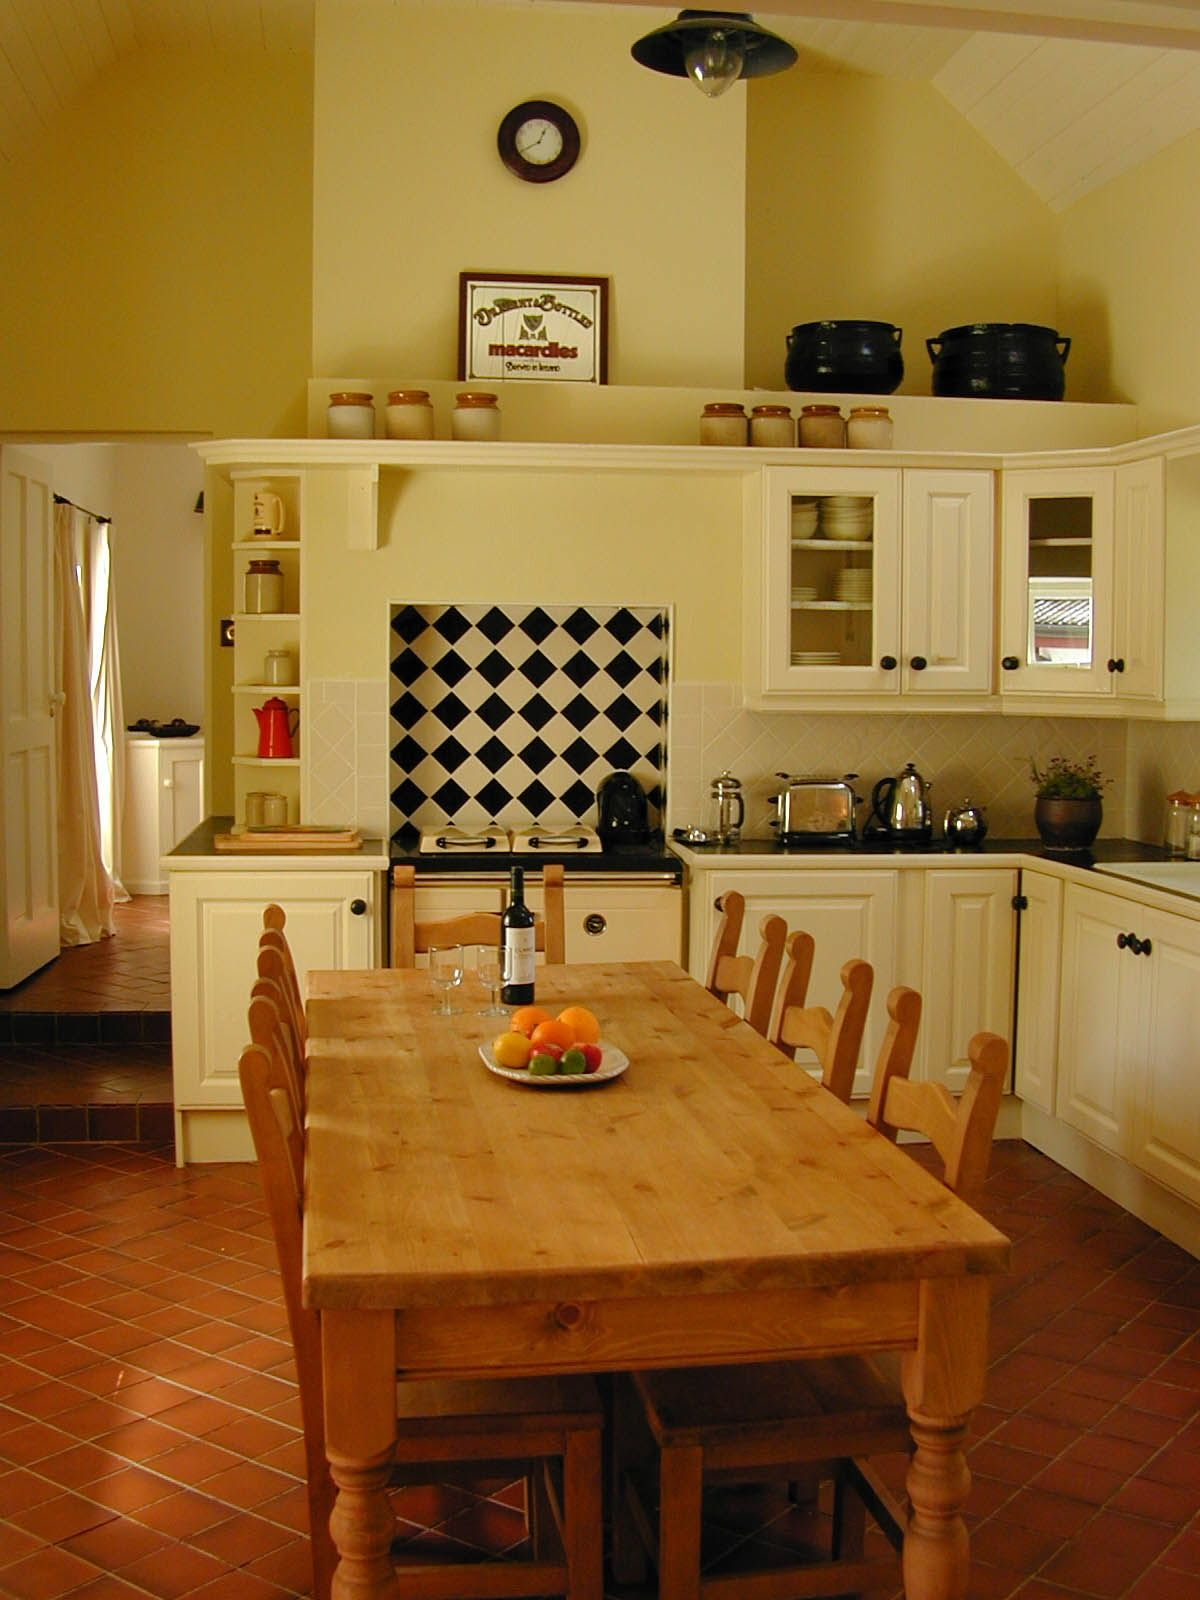 The traditional irish kitchen at our wicklow cottage rental